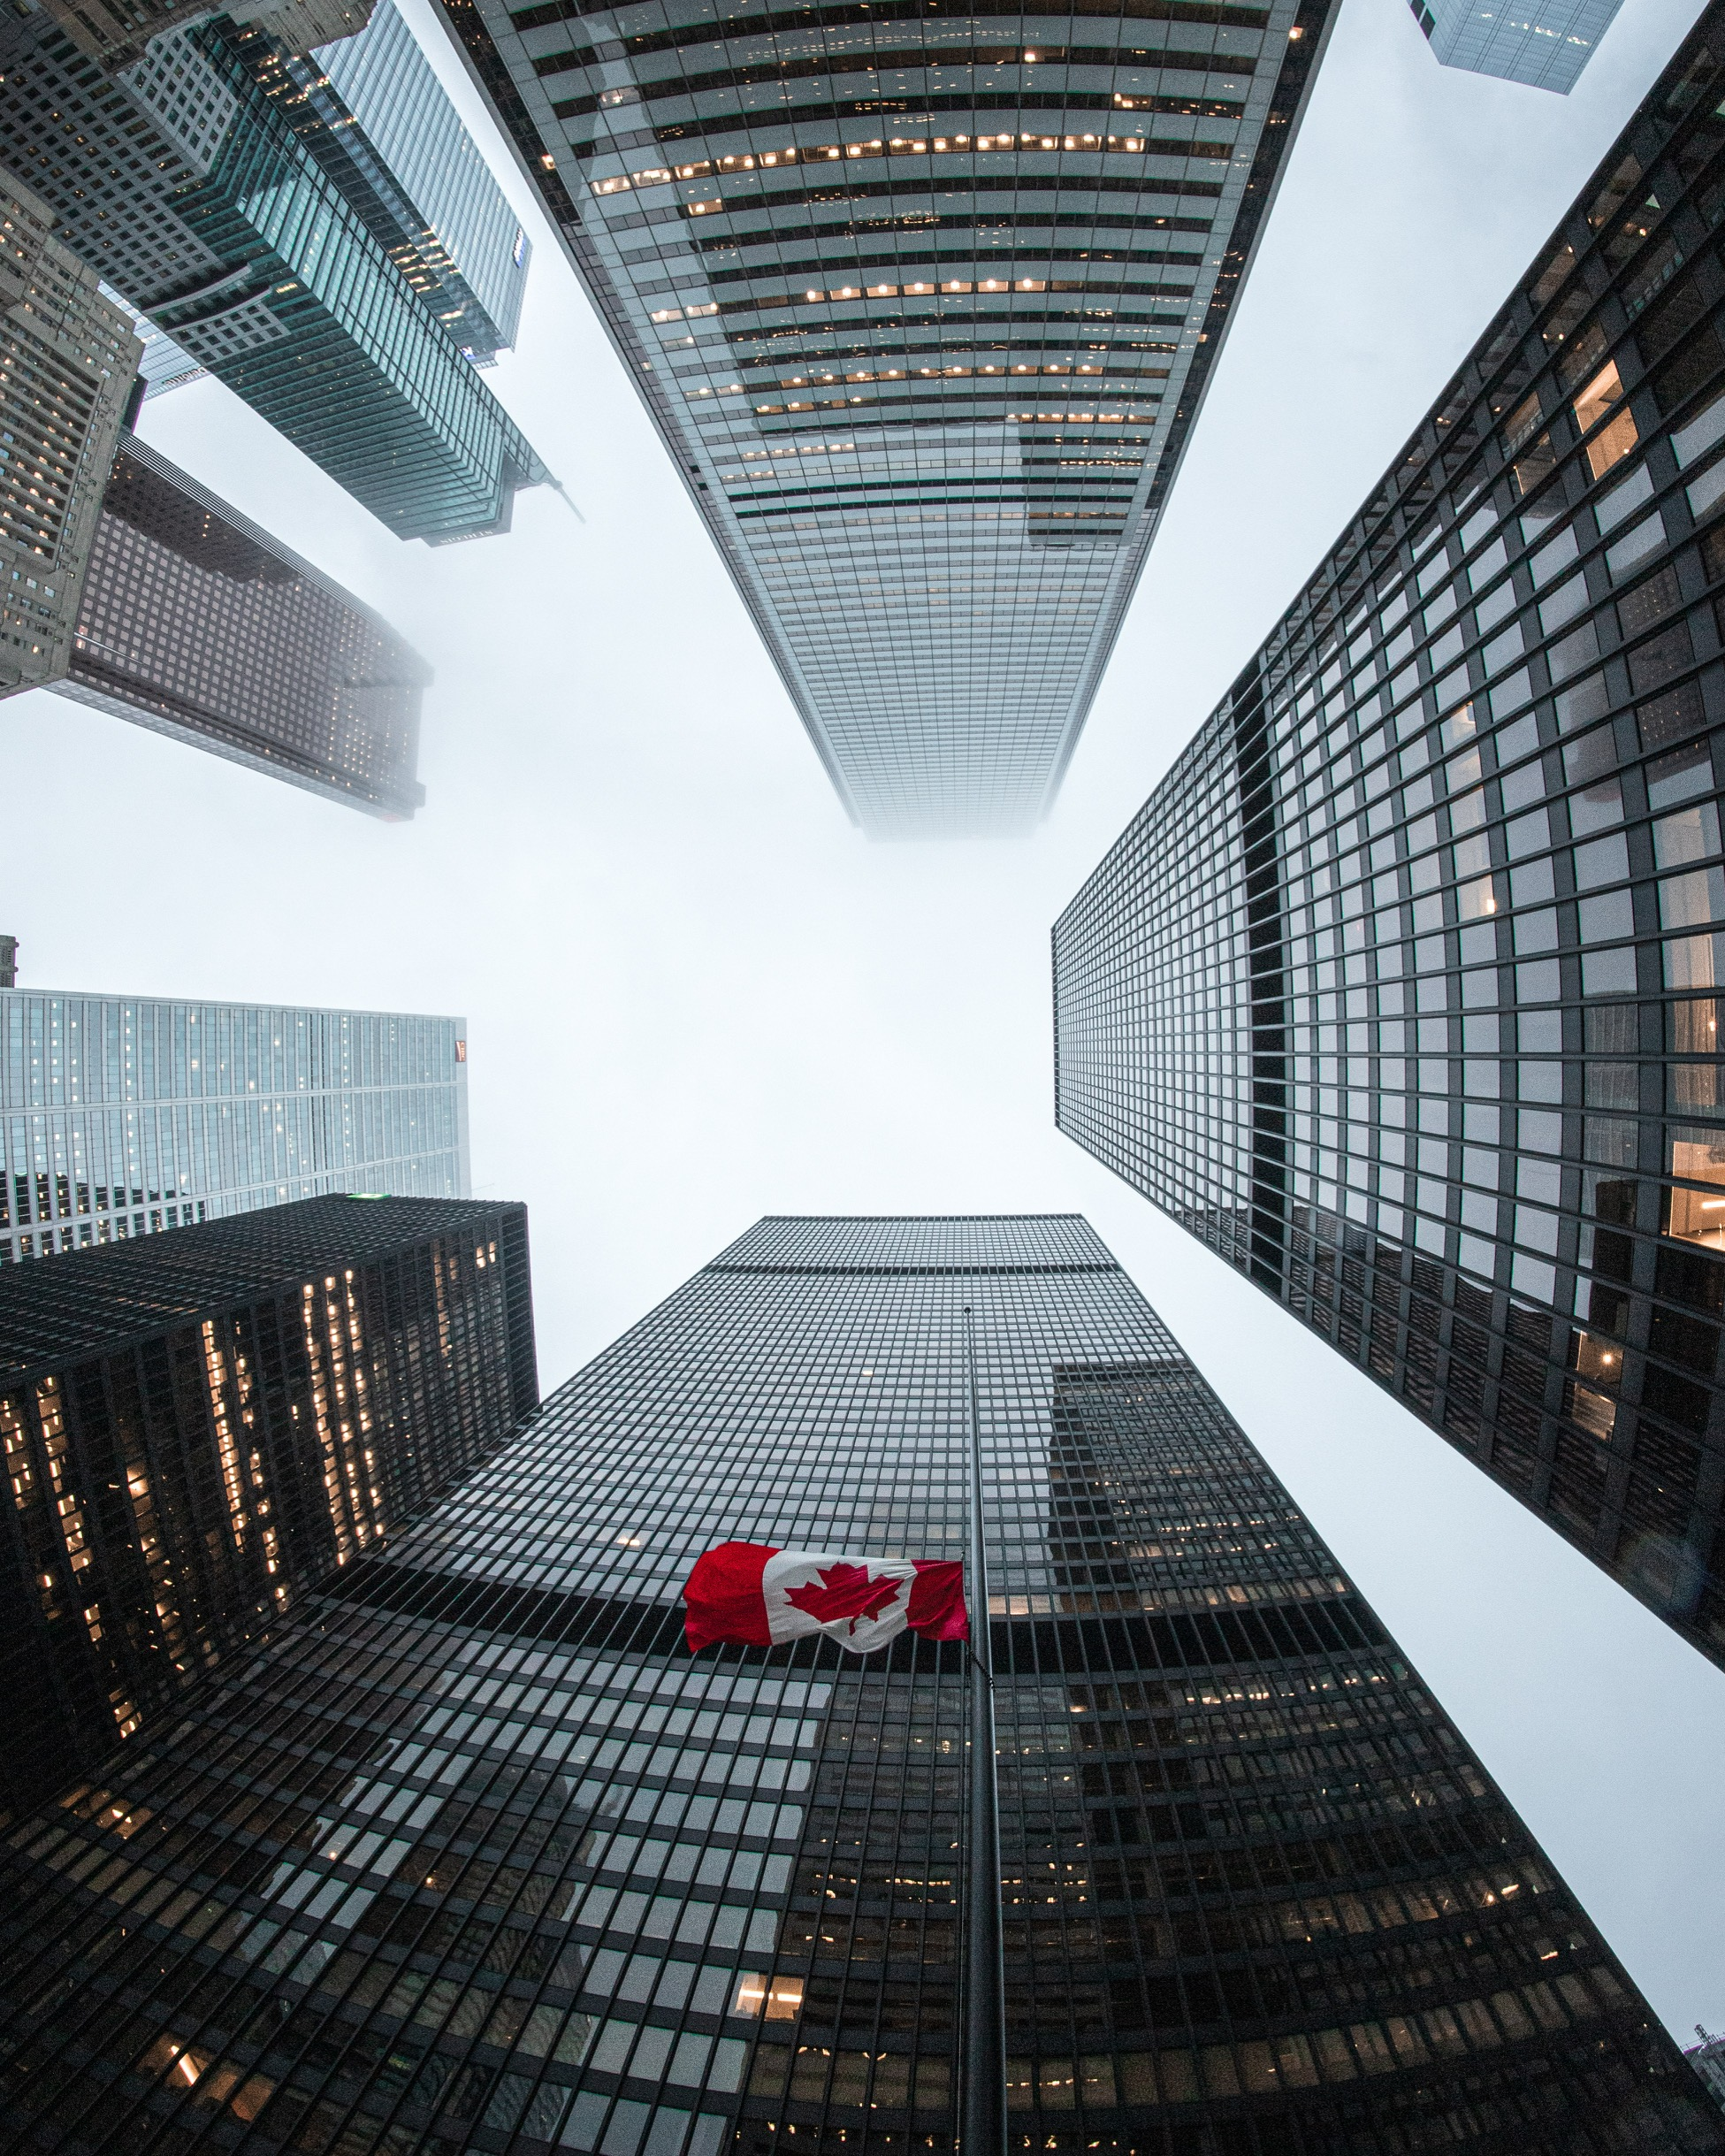 Immigrating to Canada: Use an immigration lawyer or go on your own?